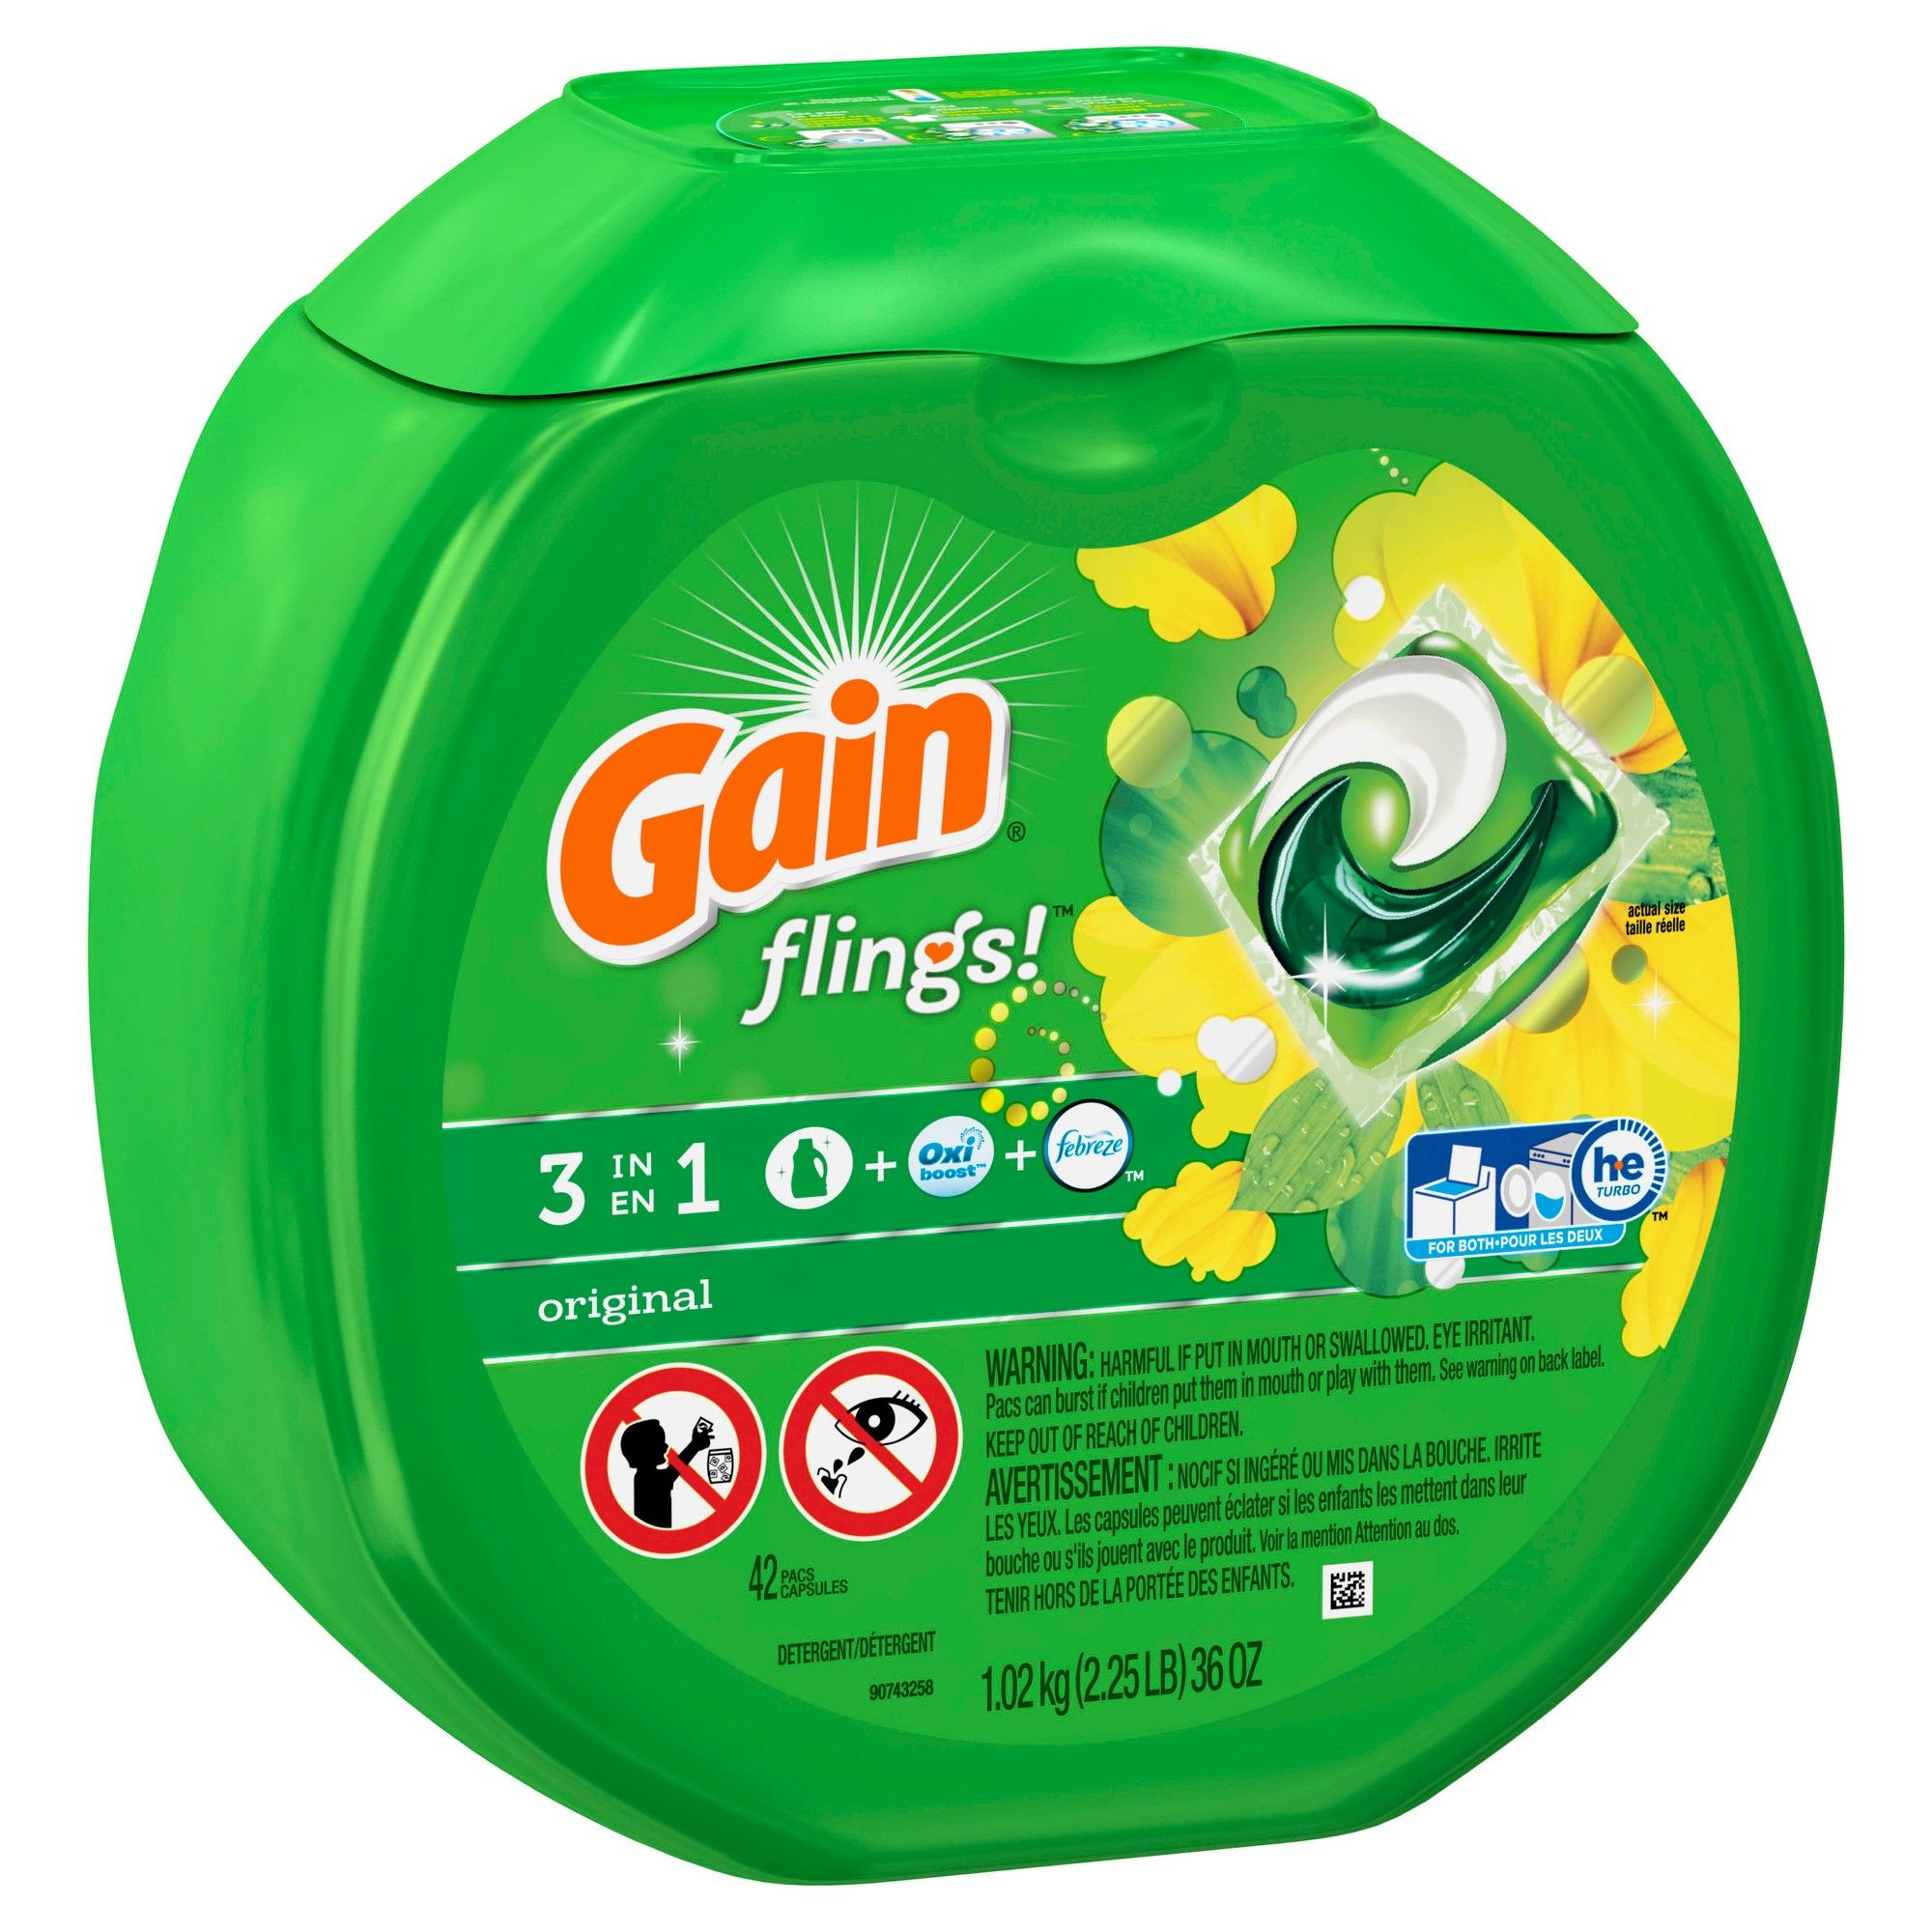 photo regarding Free Printable Gain Laundry Detergent Coupons referred to as Pin upon what I invest in